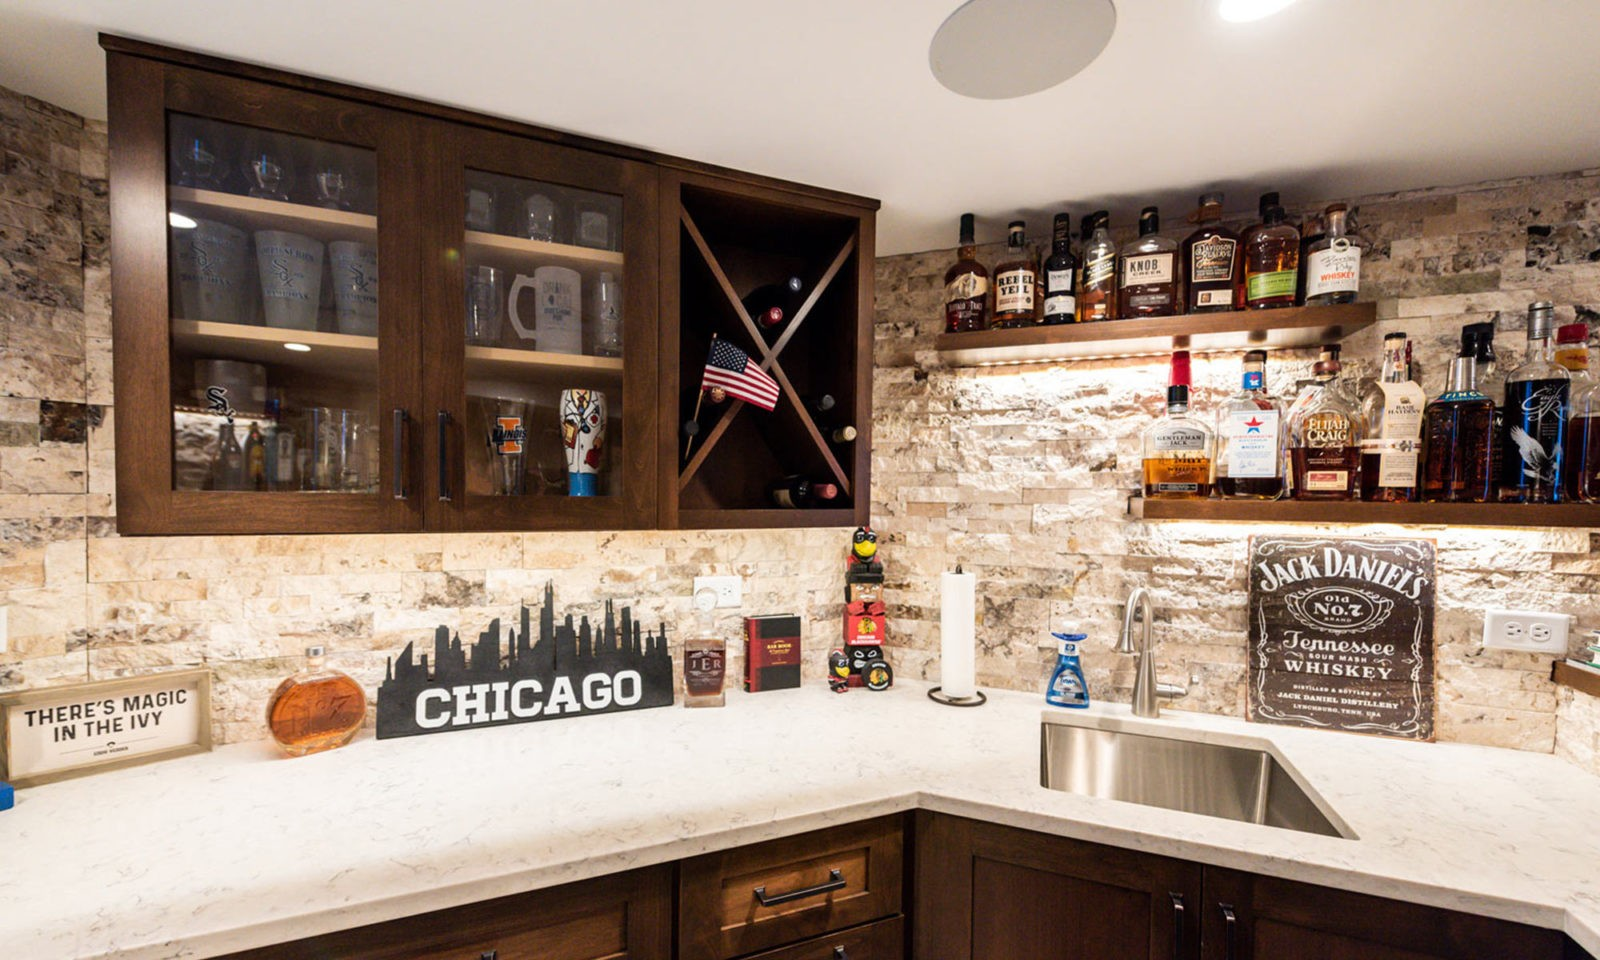 view of basement remodel bar with sports game on TV